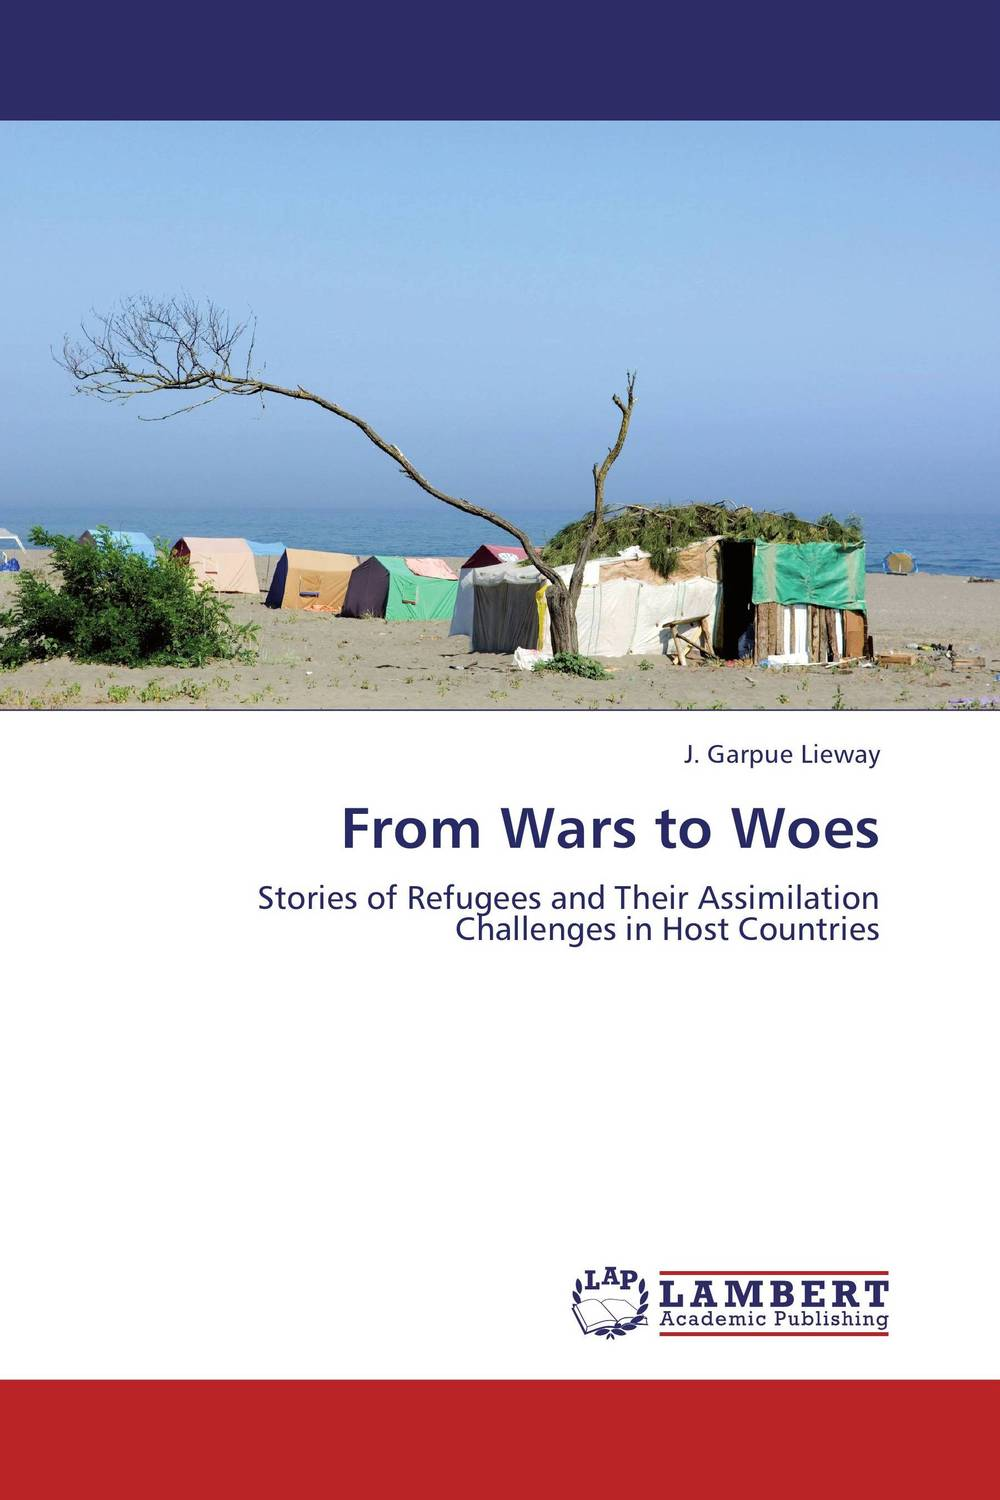 From Wars to Woes land conflicts and livelihoods of refugees and host communities